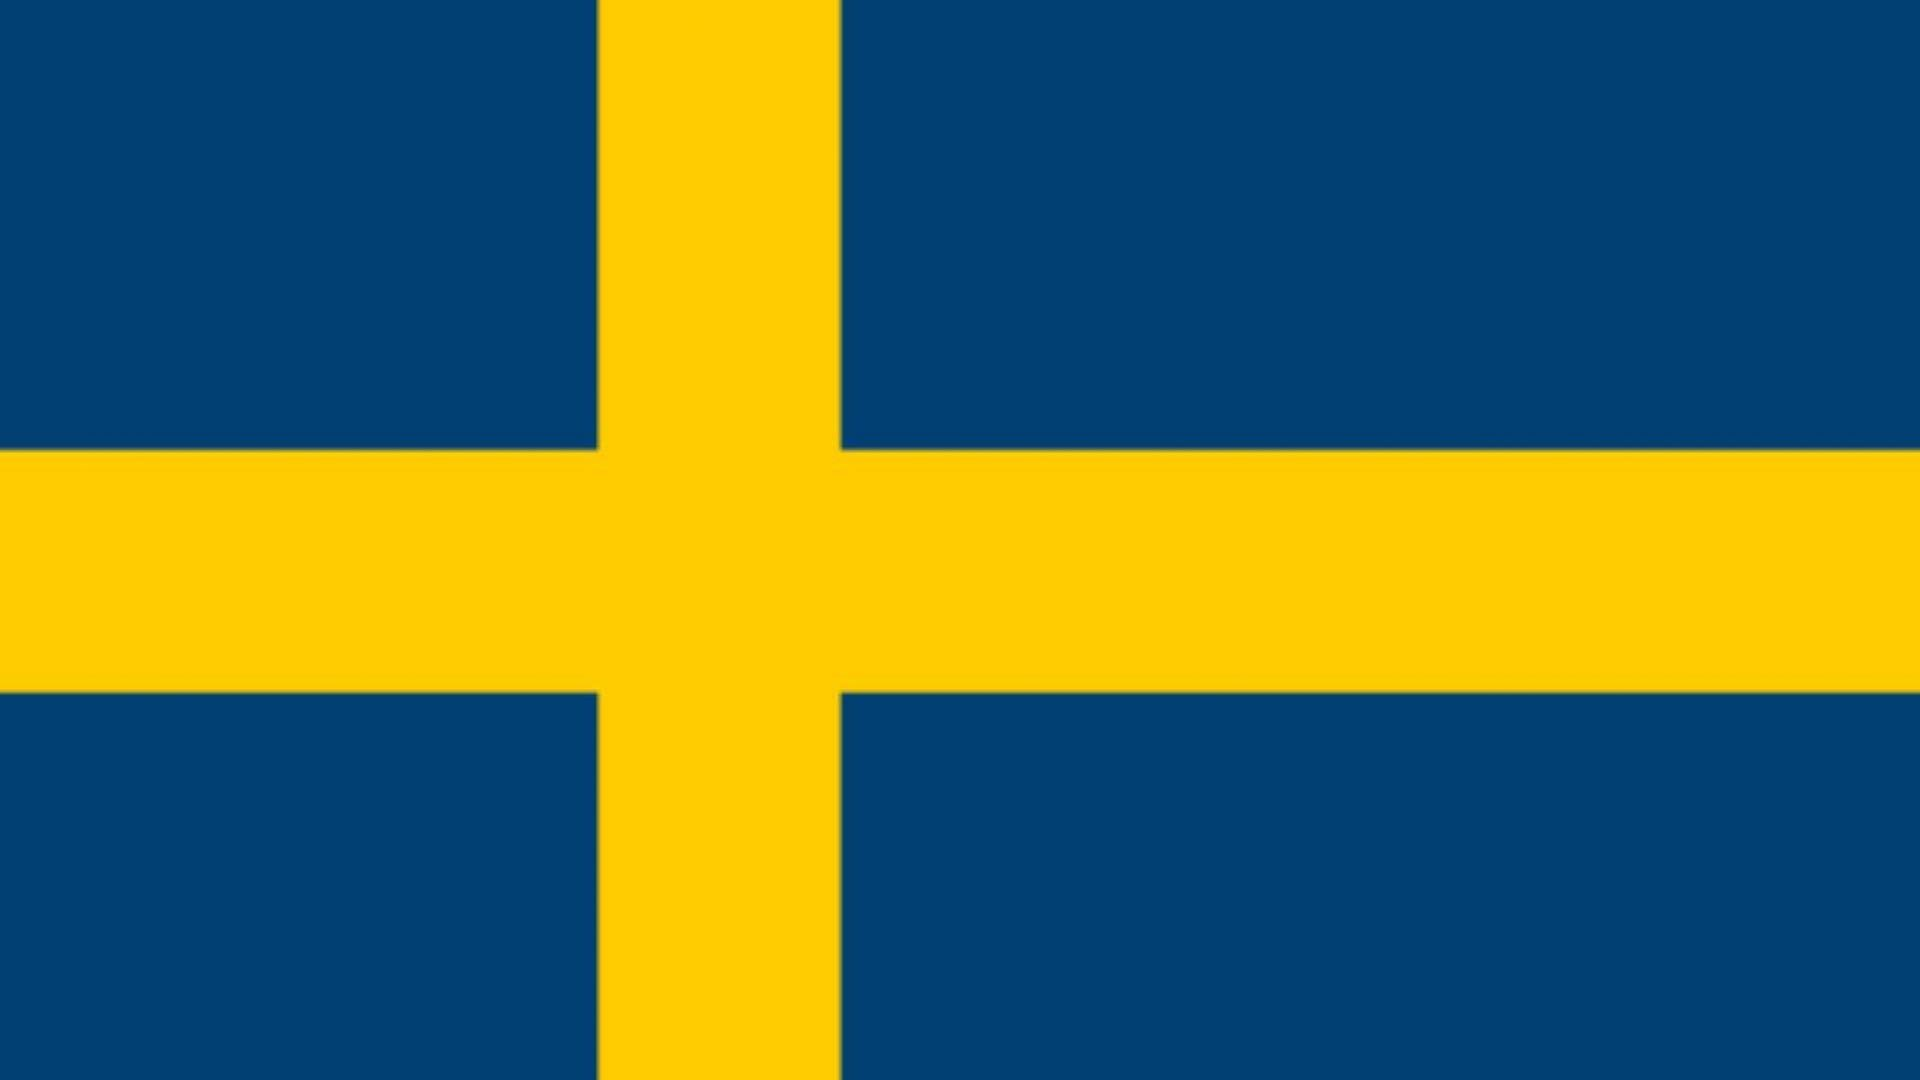 Sweden Flag   Wallpaper High Definition High Quality Widescreen 1920x1080